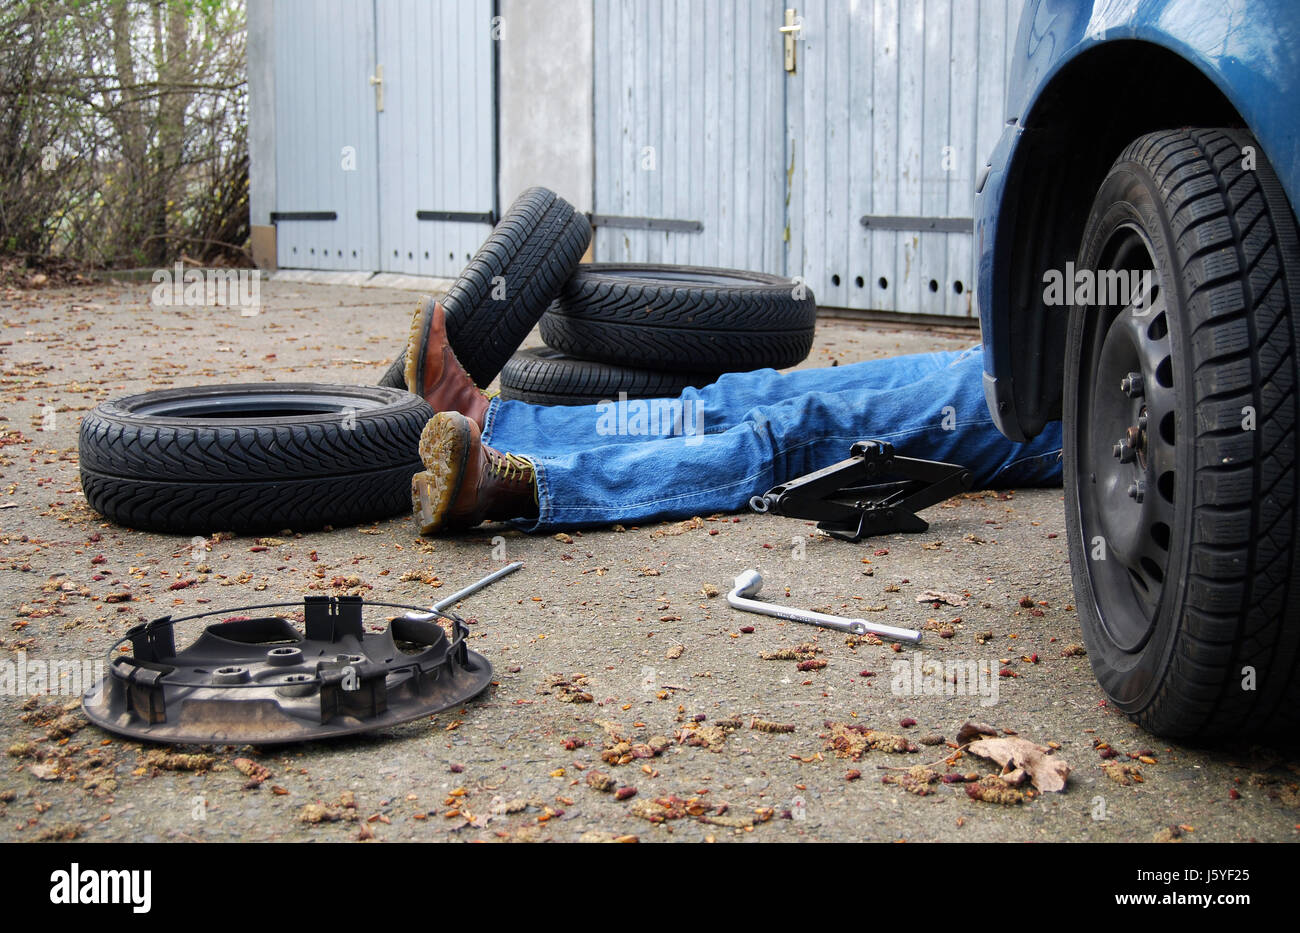 chaos layman change of tyres hub cap tyre tire tyres exhausted man make tool stock